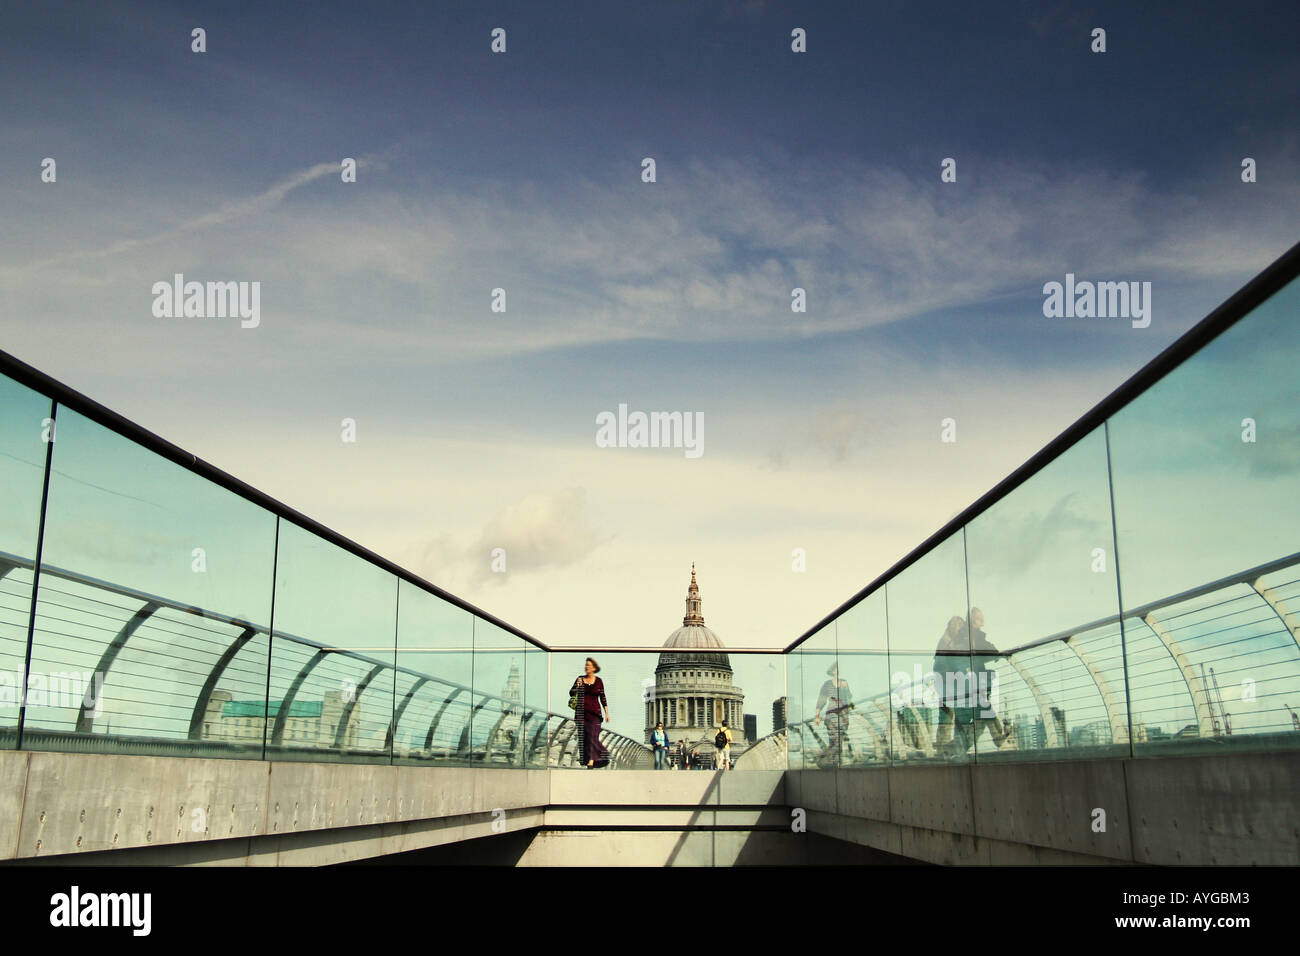 millennium bridge - Stock Image